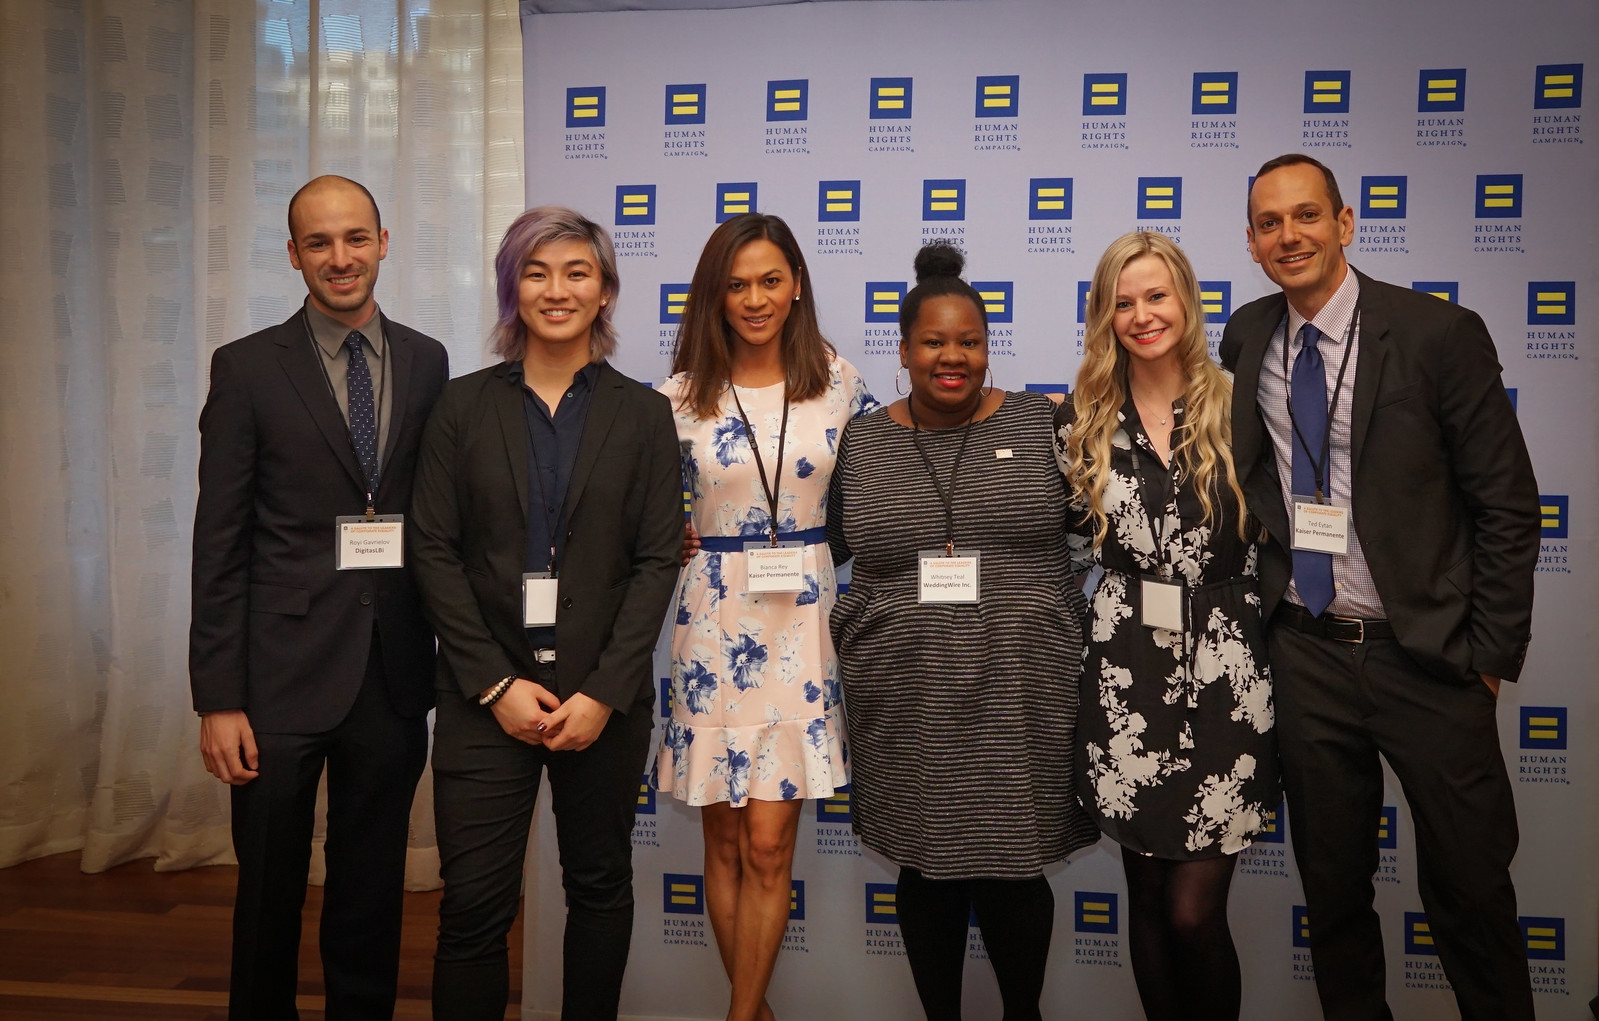 2016.03.30 Human Rights Campaign Corporate Equality Index Best Places to Work Reception 03832